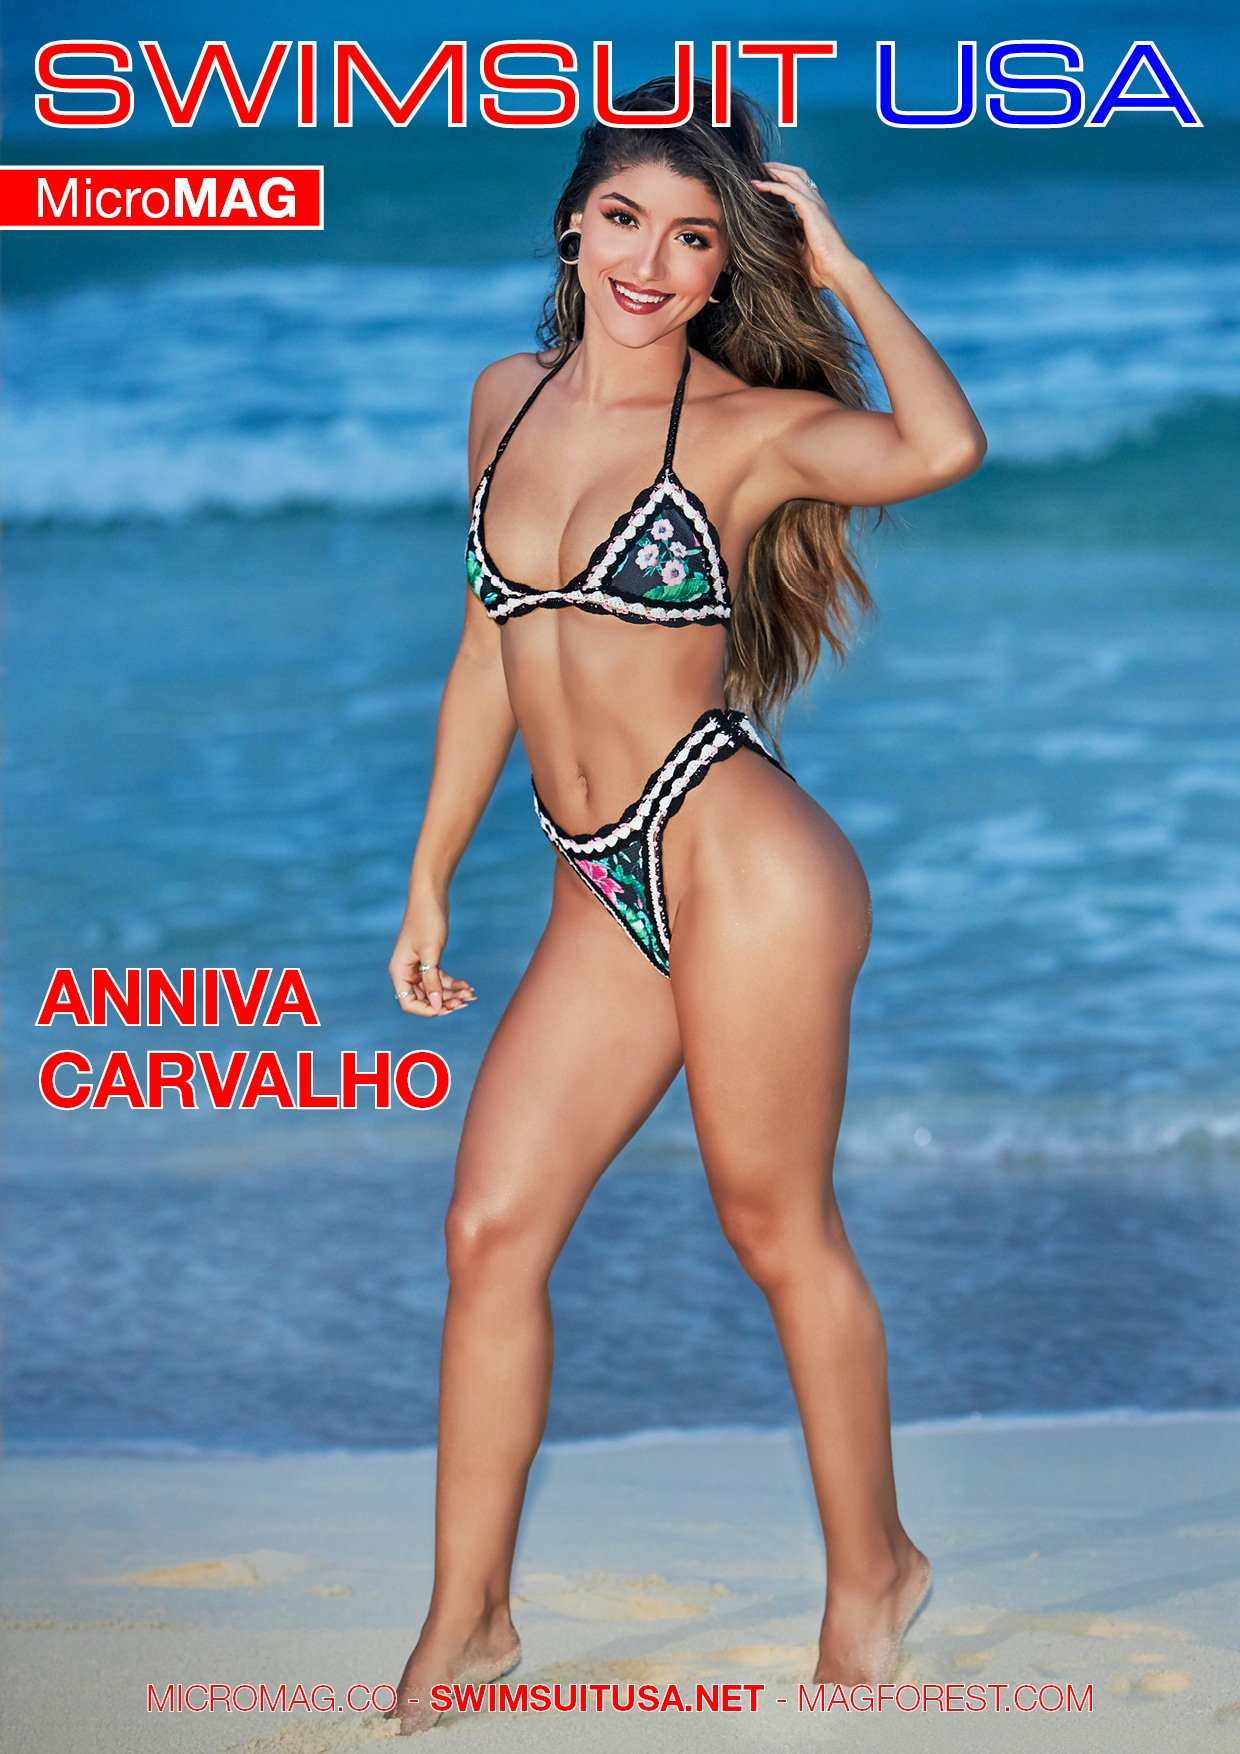 Swimsuit USA MicroMAG - Anniva Carvalho - Issue 2 3